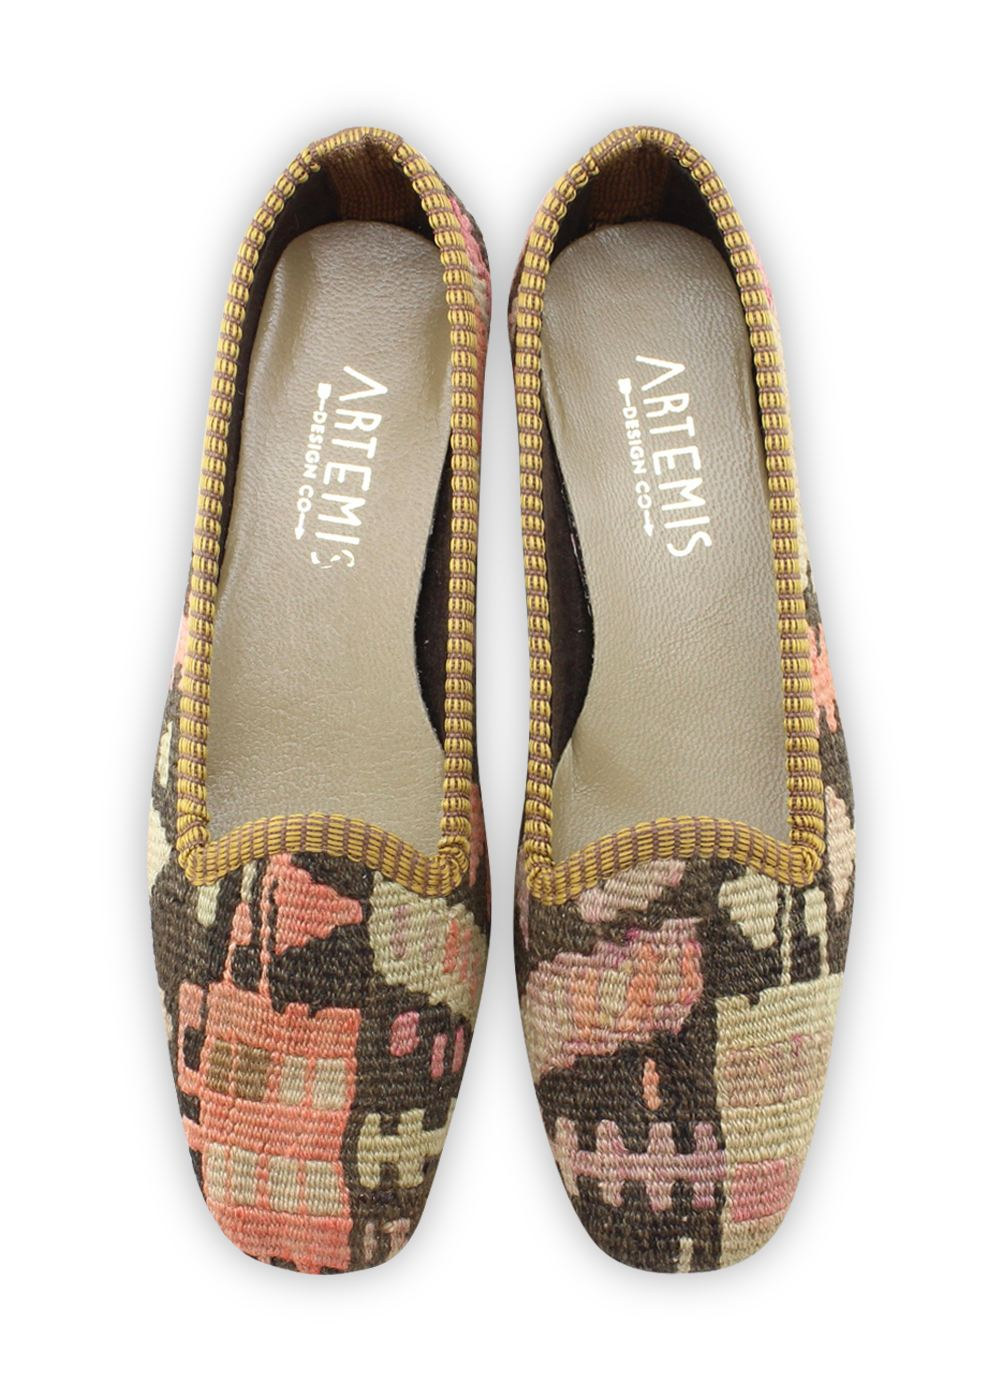 Women's Shoes - Women's Kilim Loafers - Size 37